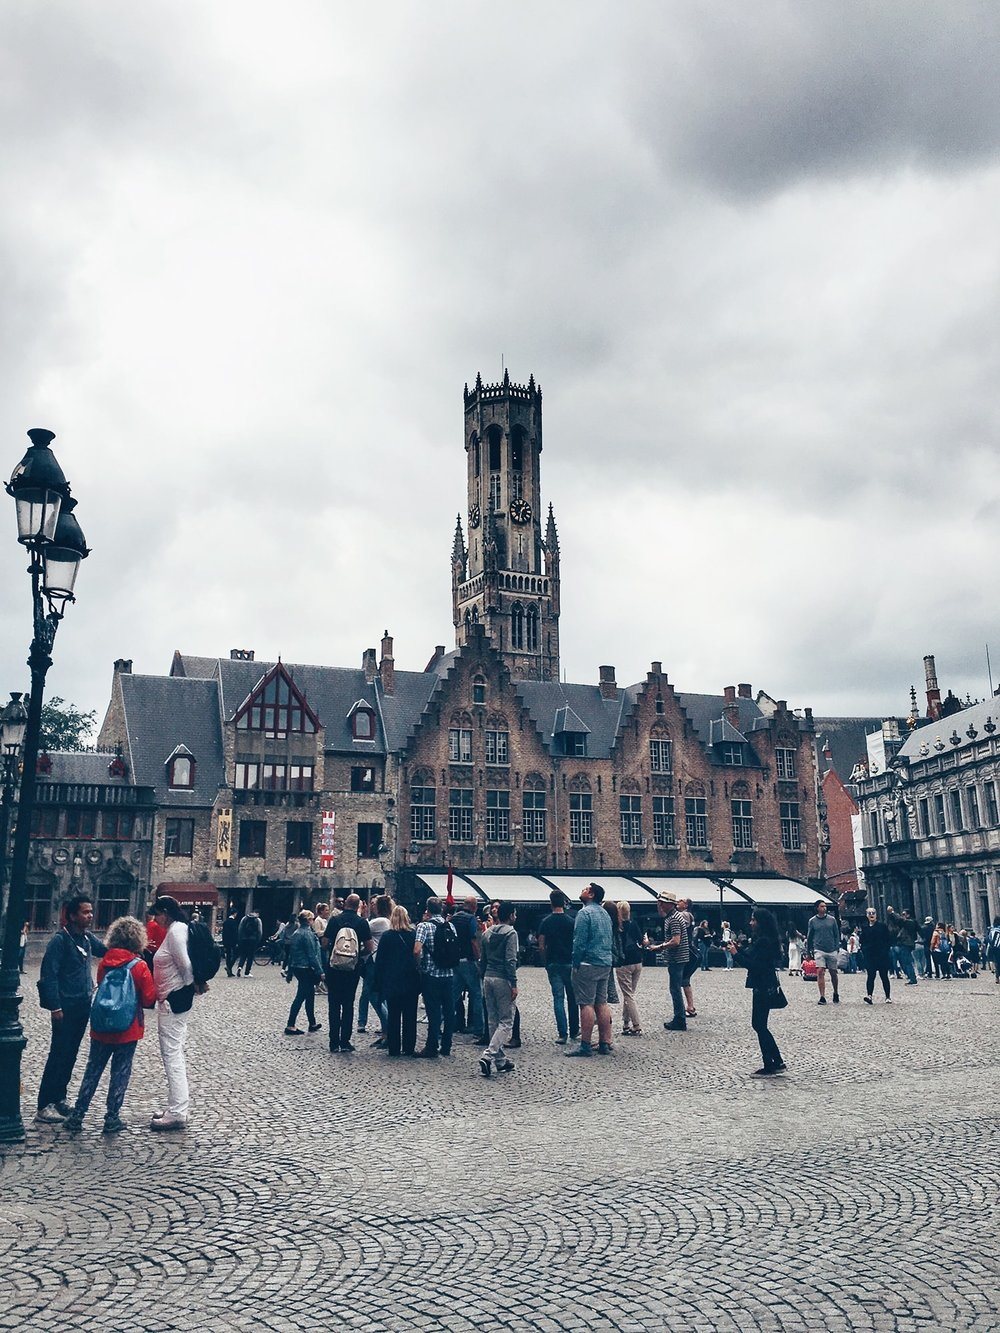 The Markt with its most distinctive sight, the Belfort. The small, unassuming house in the left hand corner is the Basilica of the Holy Blood (Bruges, Belgium)